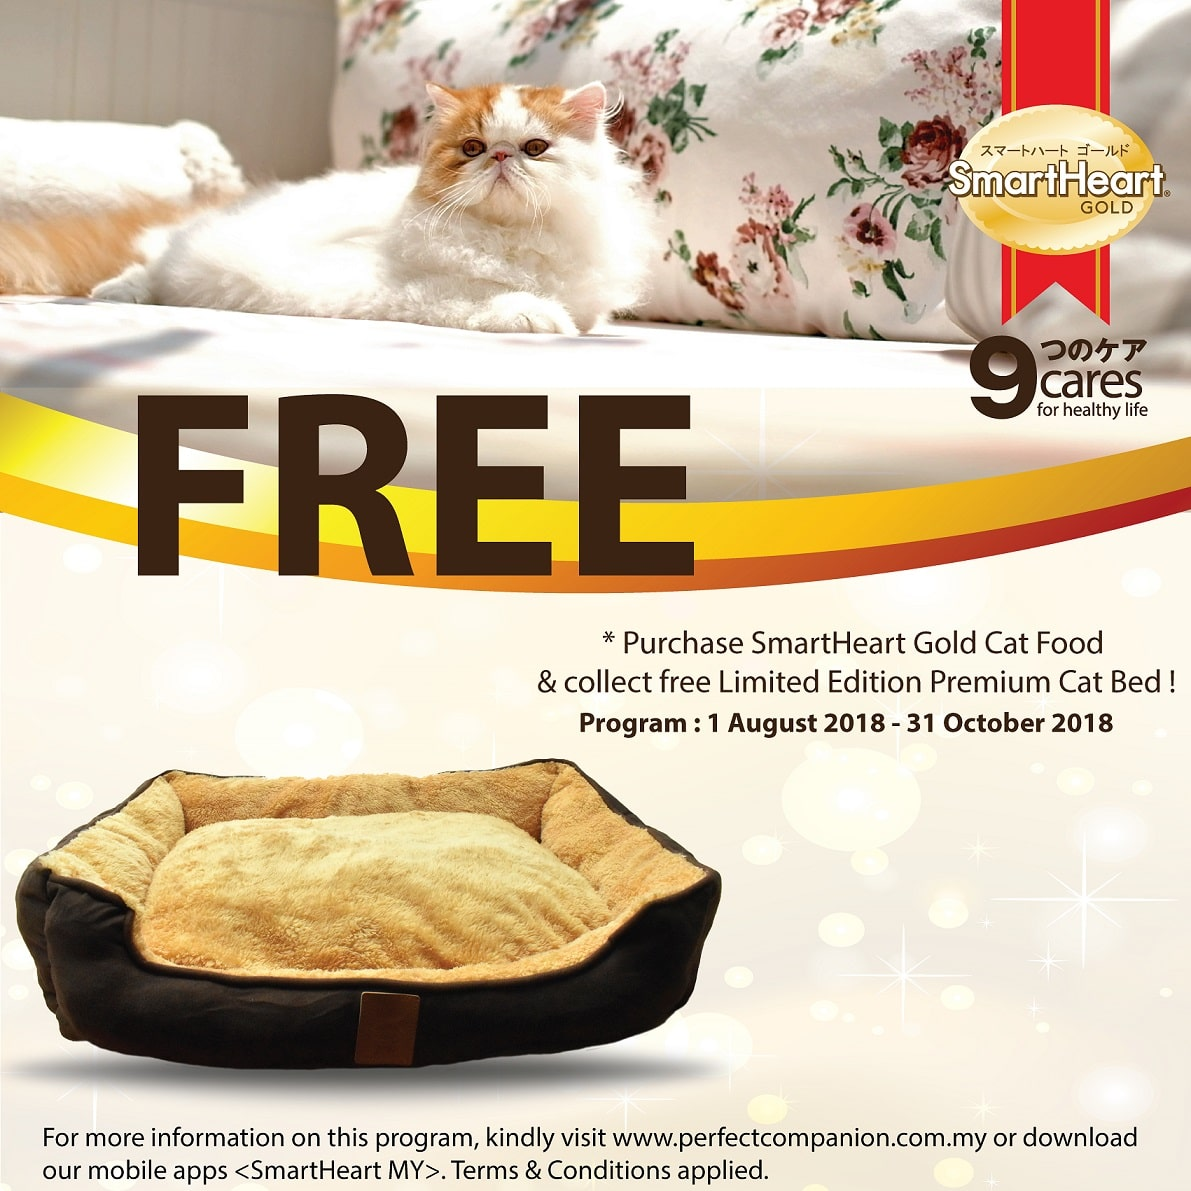 SmartHeart Gold Cat Bed Redemption Program (1 Aug – 31 Oct 2018)